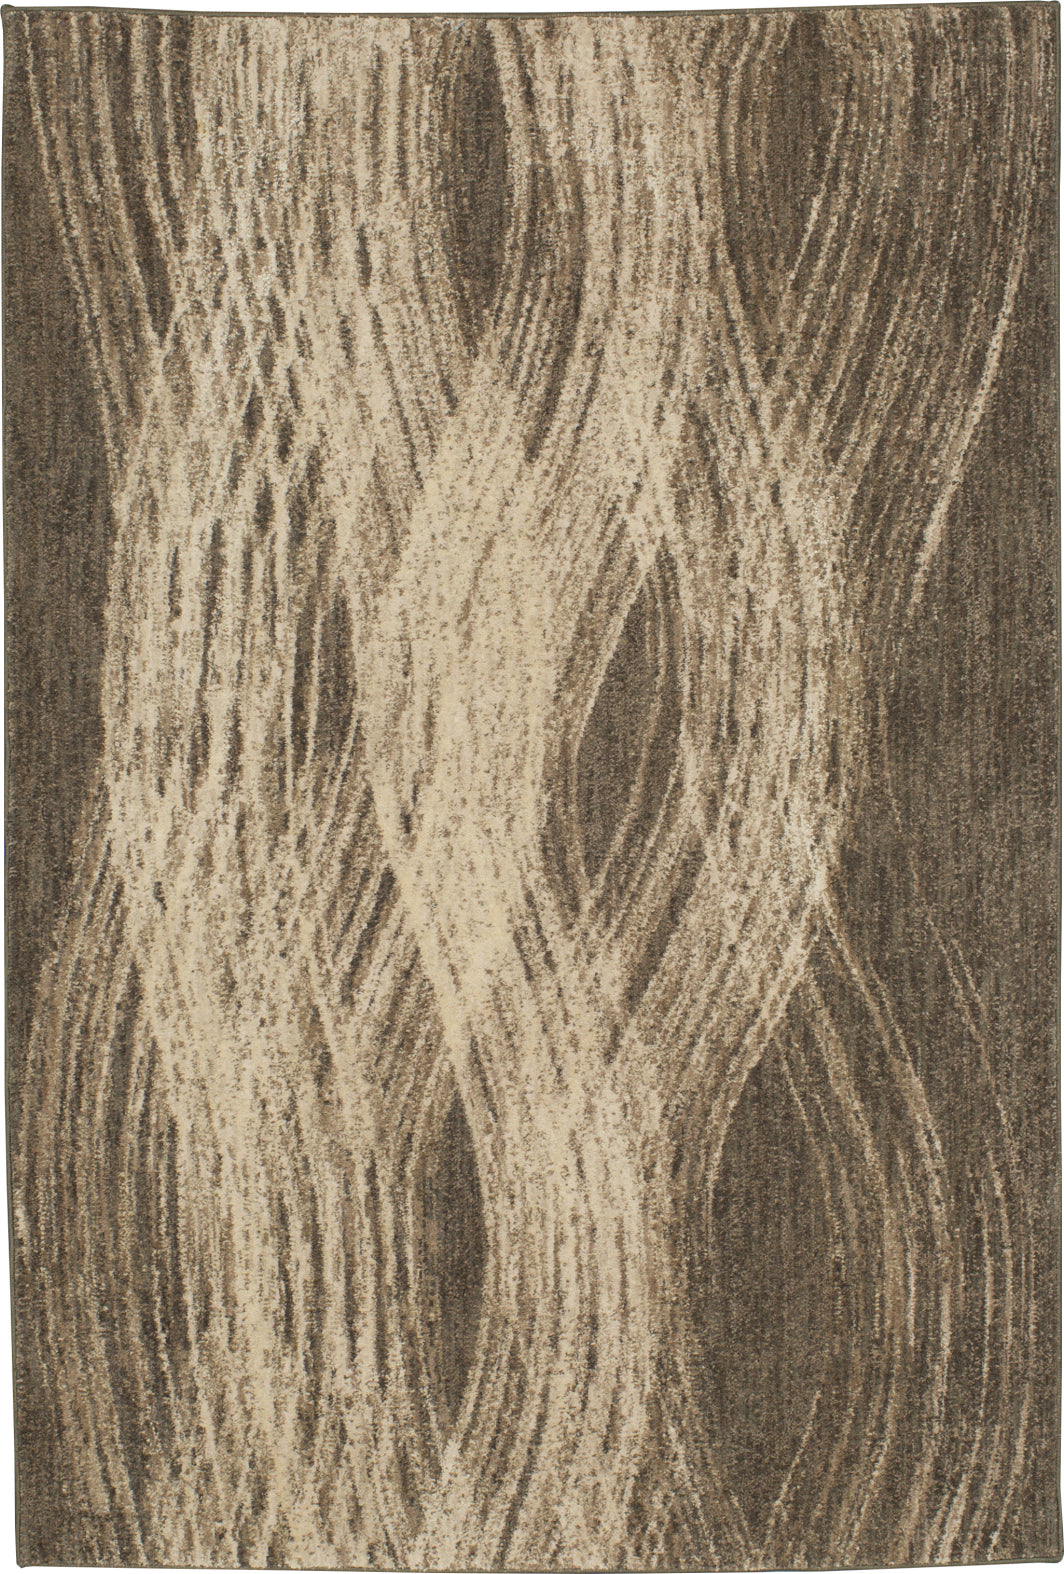 Karastan Enigma Allure Smokey Gray Mushroom Area Rug by Virginia Langley main image